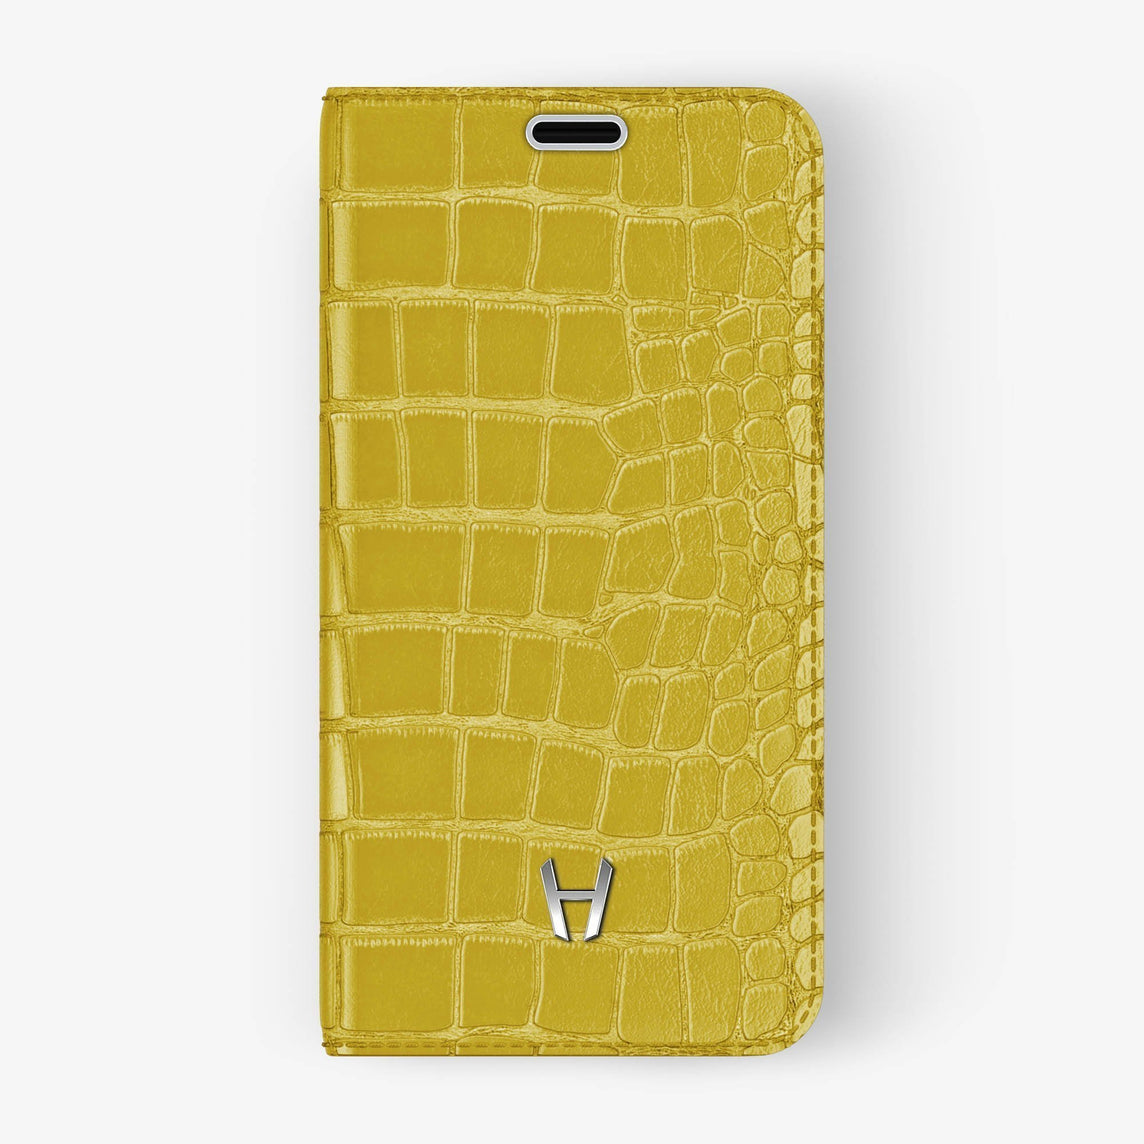 Alligator Folio Case iPhone Xs Max | Yellow - Stainless Steel without-personalization